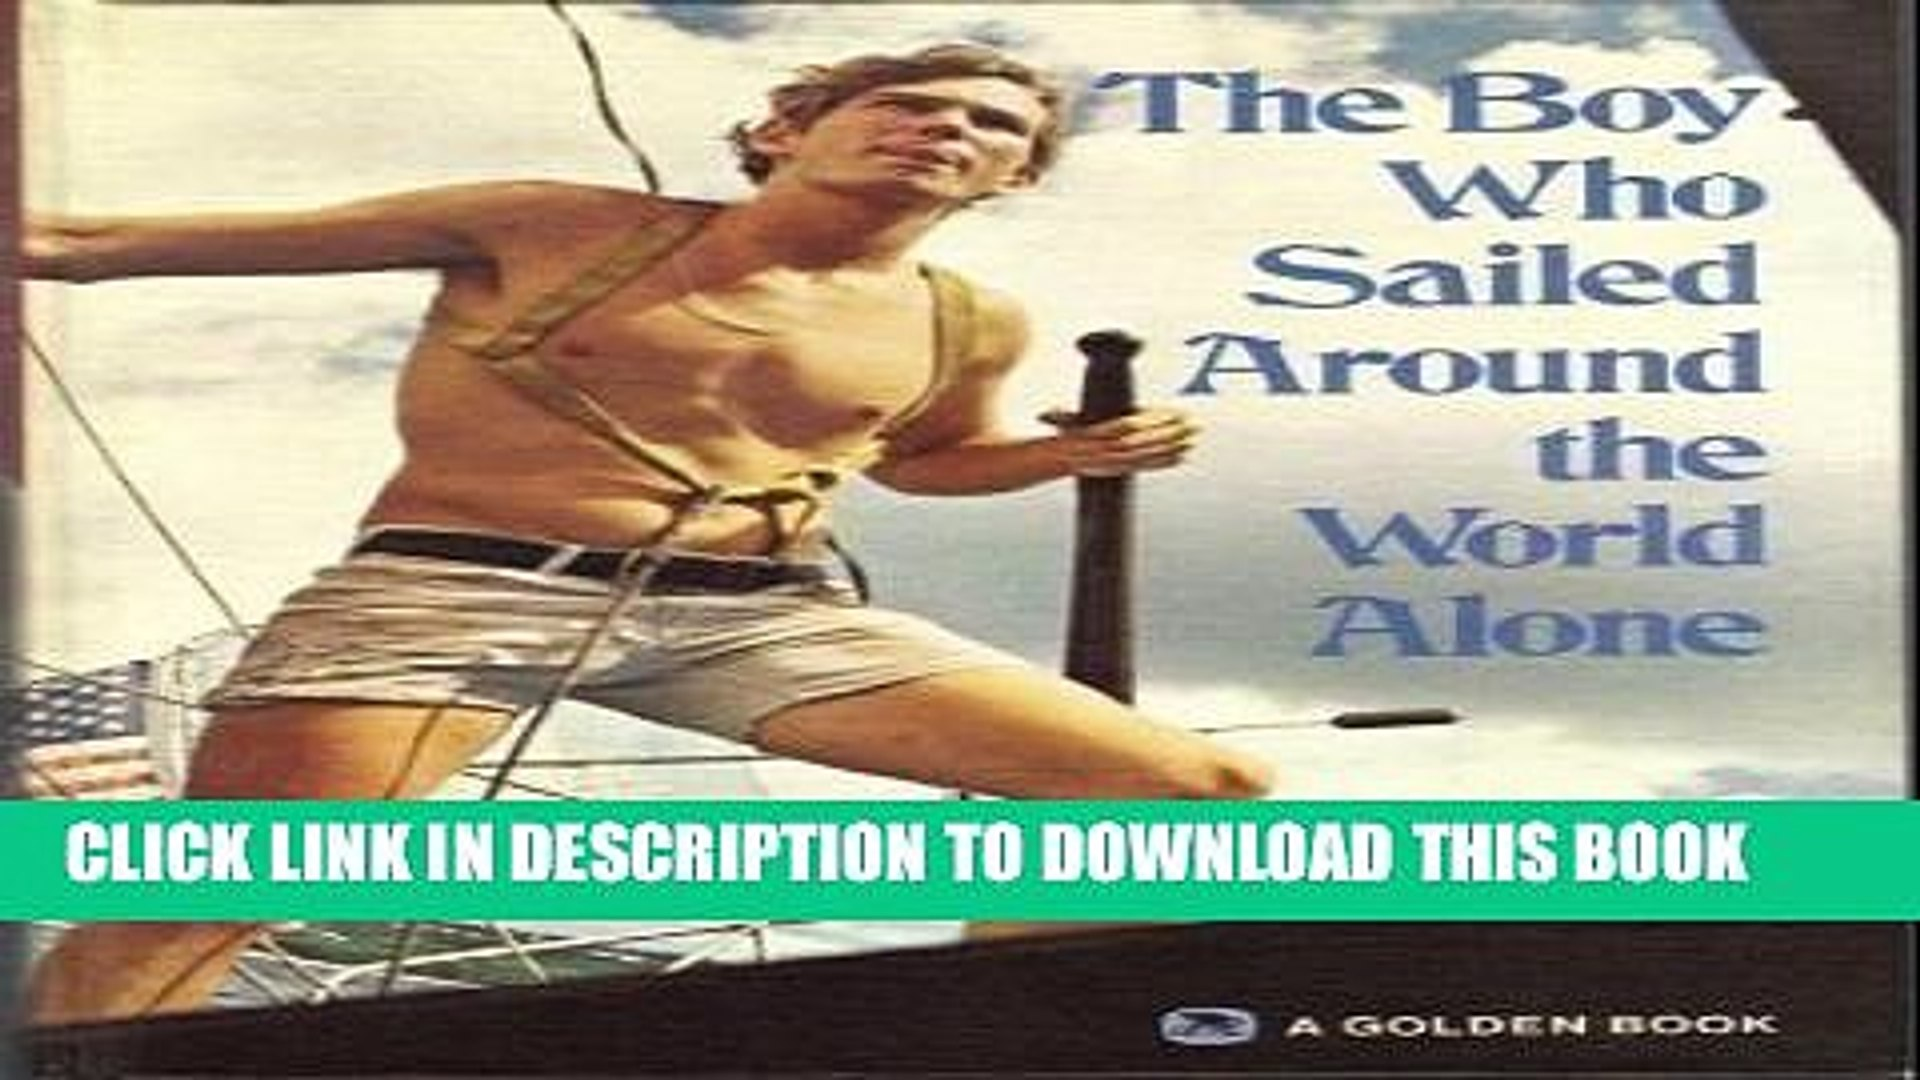 [PDF] The Boy Who Sailed Around the World Alone Popular Online